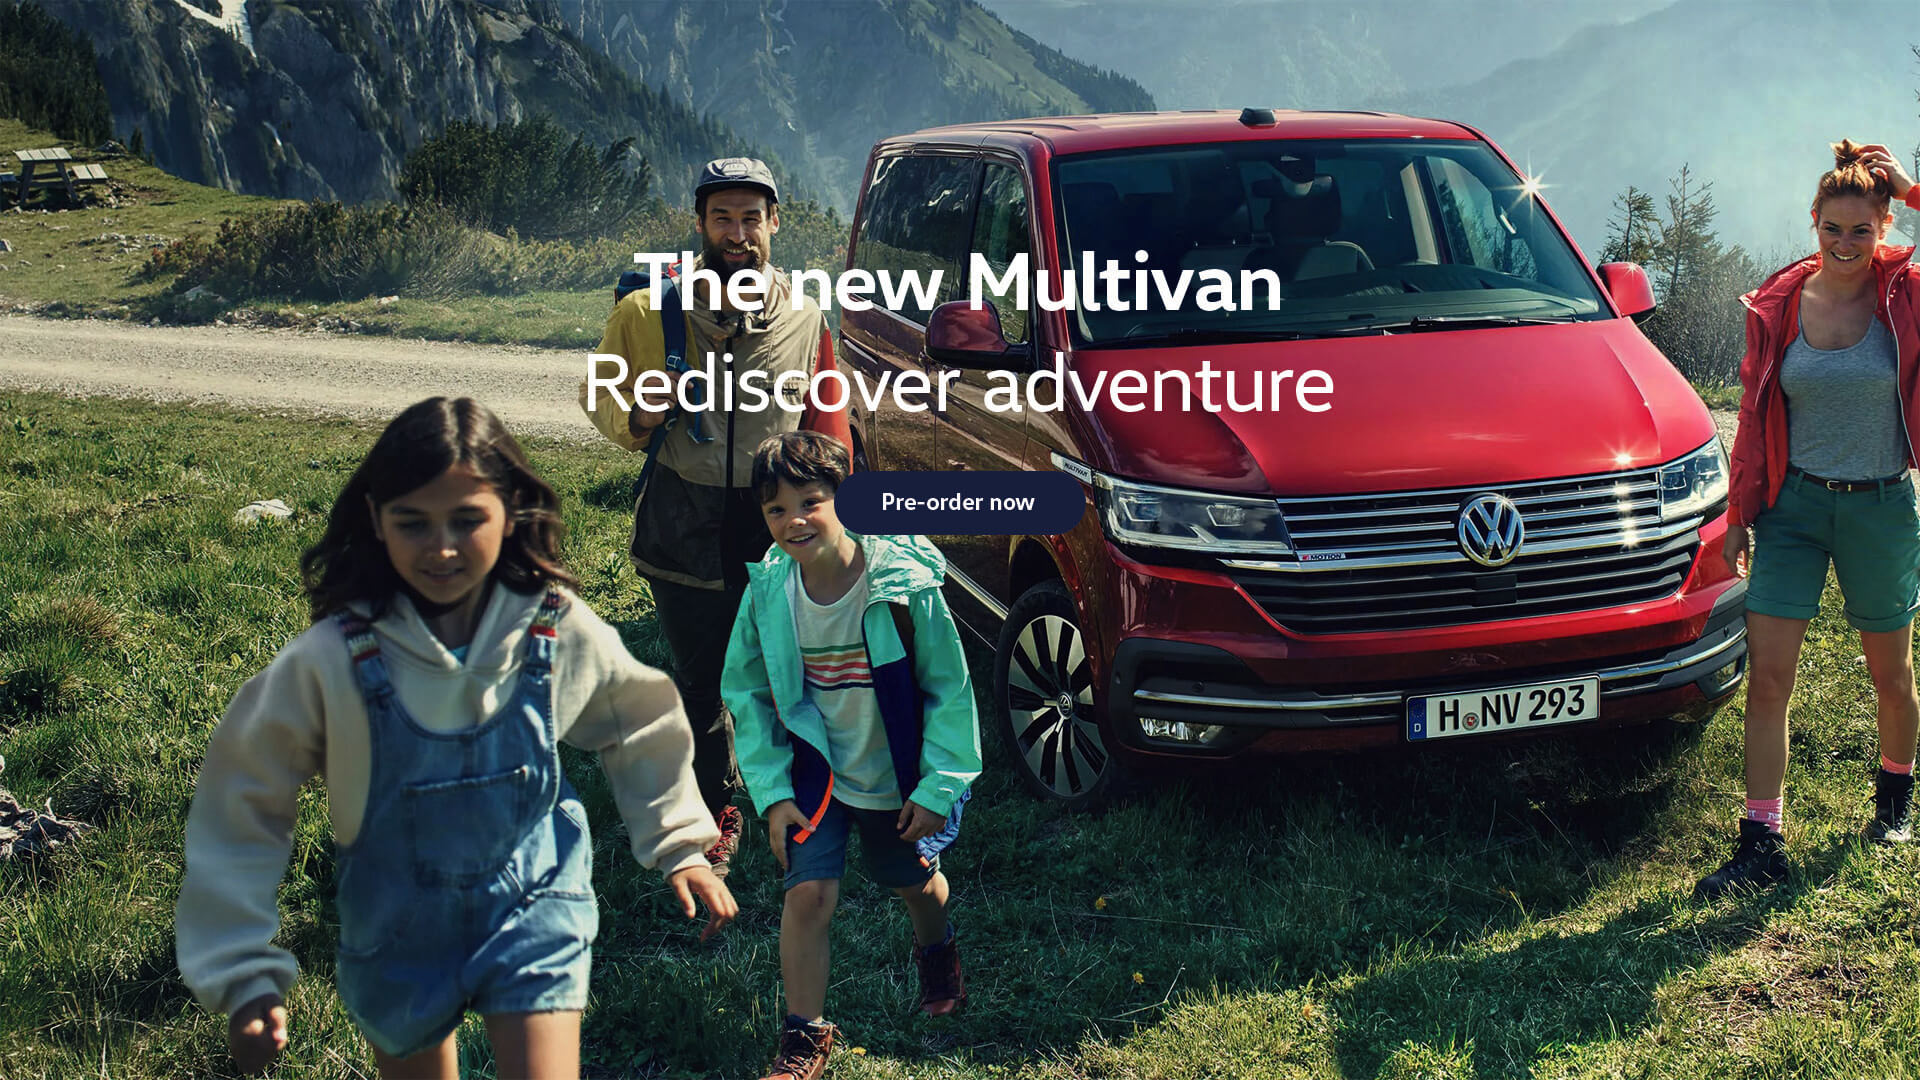 The new Multivan. Rediscover Adventure.